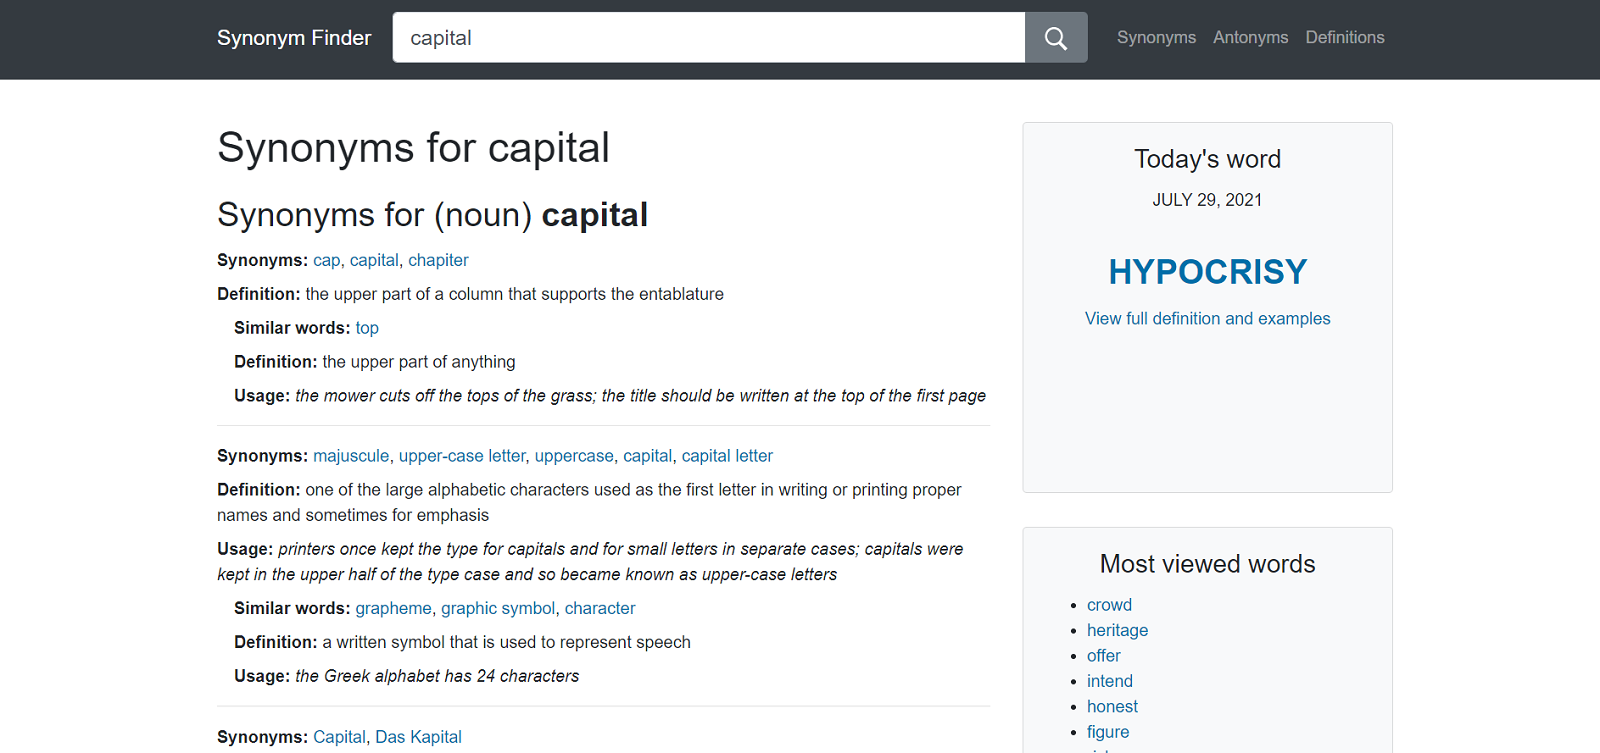 20 Online Synonym Dictionaries To Help You Find A Similar Word